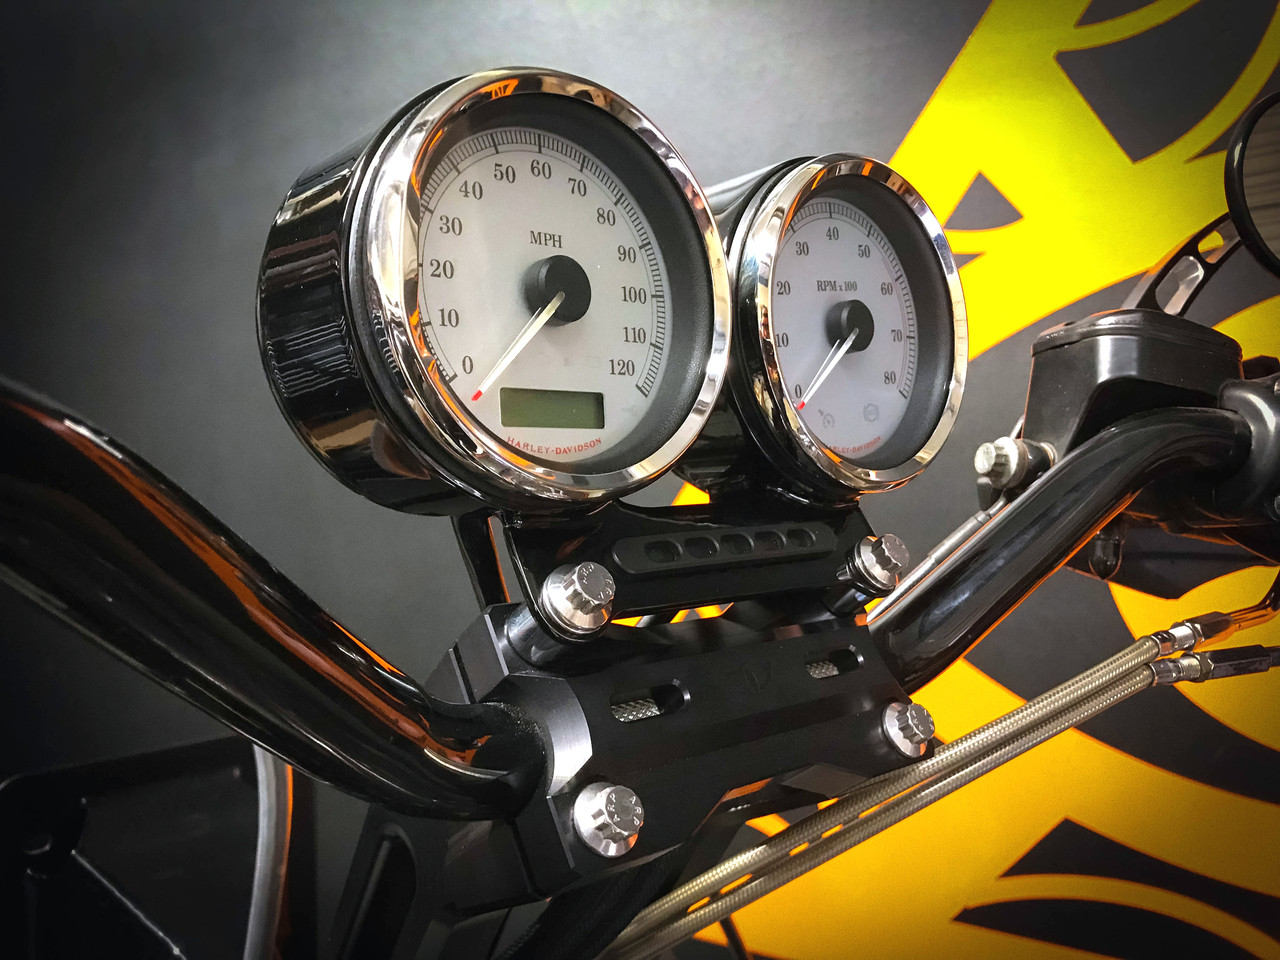 hight resolution of  dyna fxd sdo relocation harley davidson tachometer wiring diagram on 98 ultra classic wiring diagram